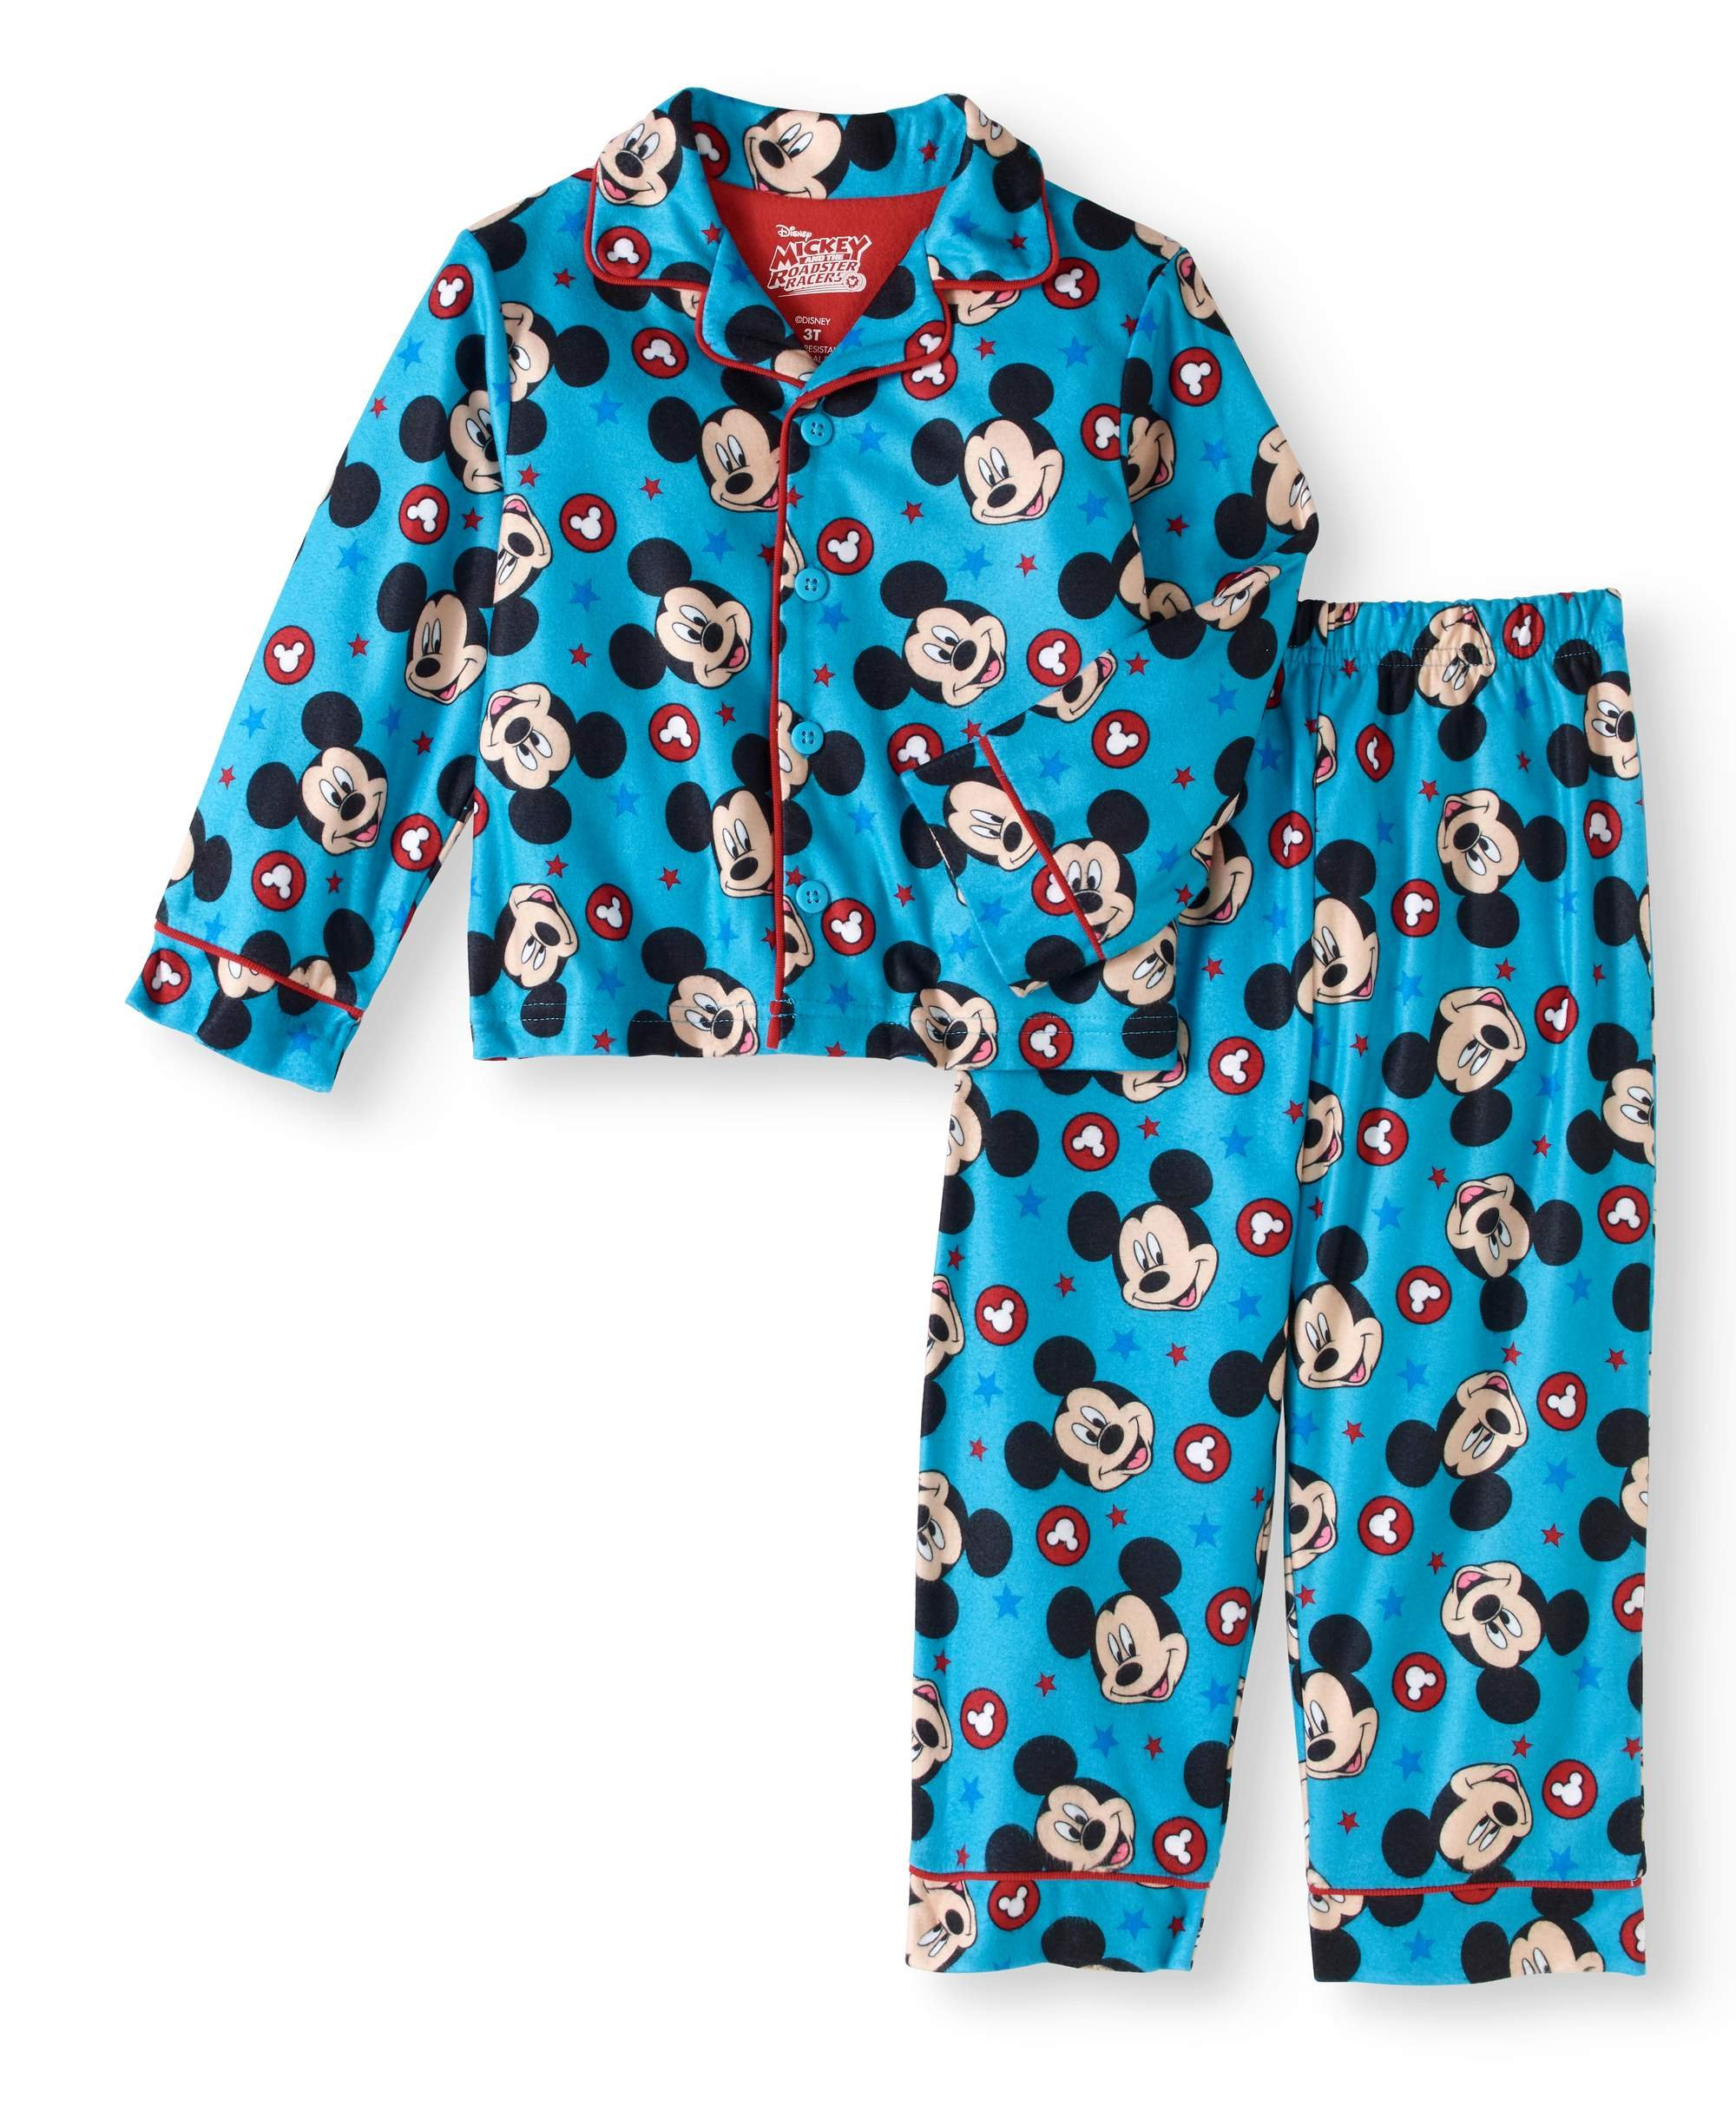 Long-Sleeve Button-Down Top /& PJ Pants Jellifish Kids Boys 2 Piece Pajama Set